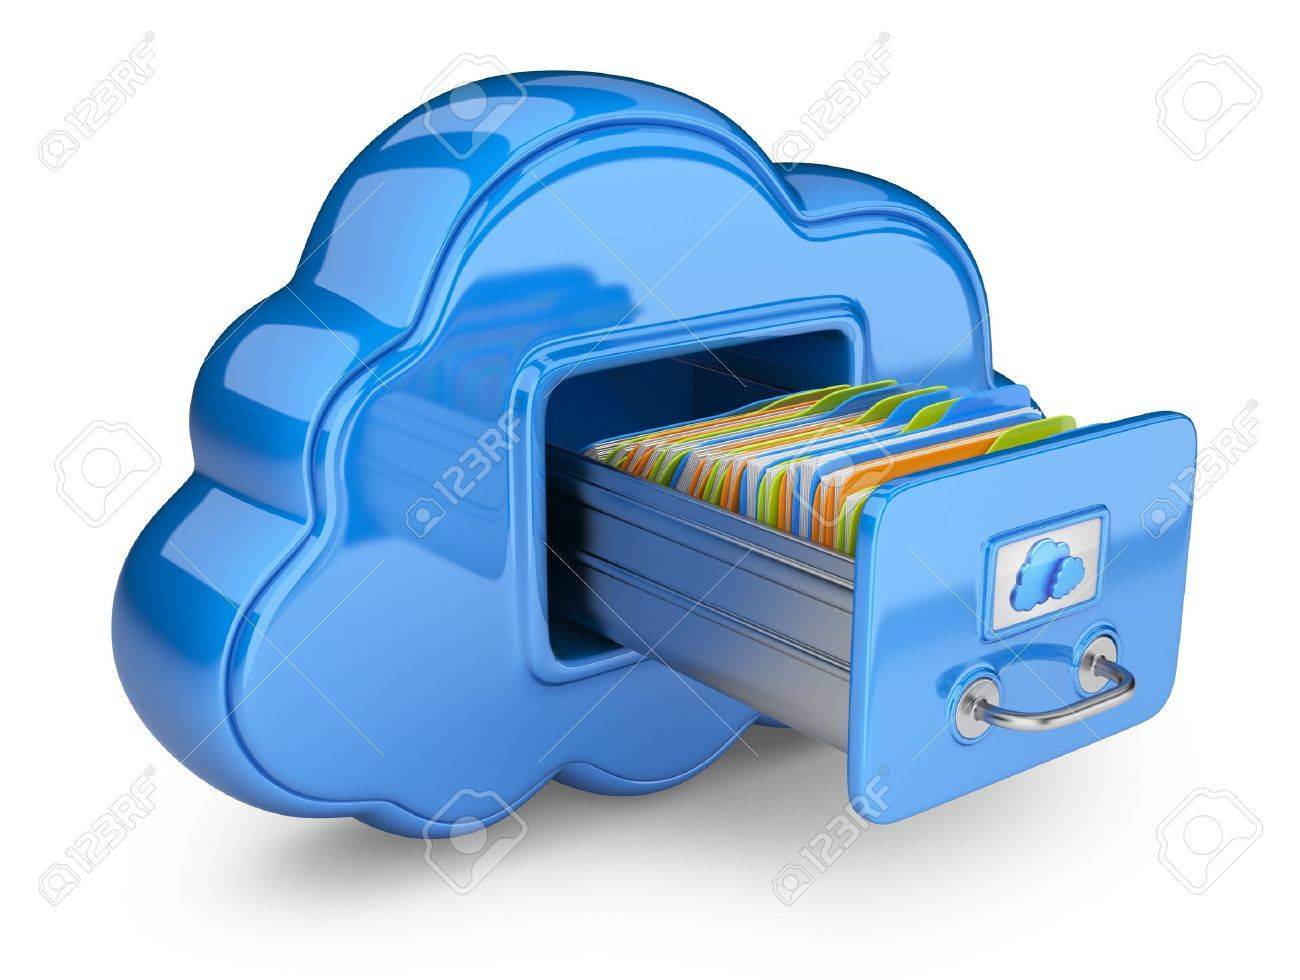 File storage in cloud 3D computer icon isolated on white - 14846799